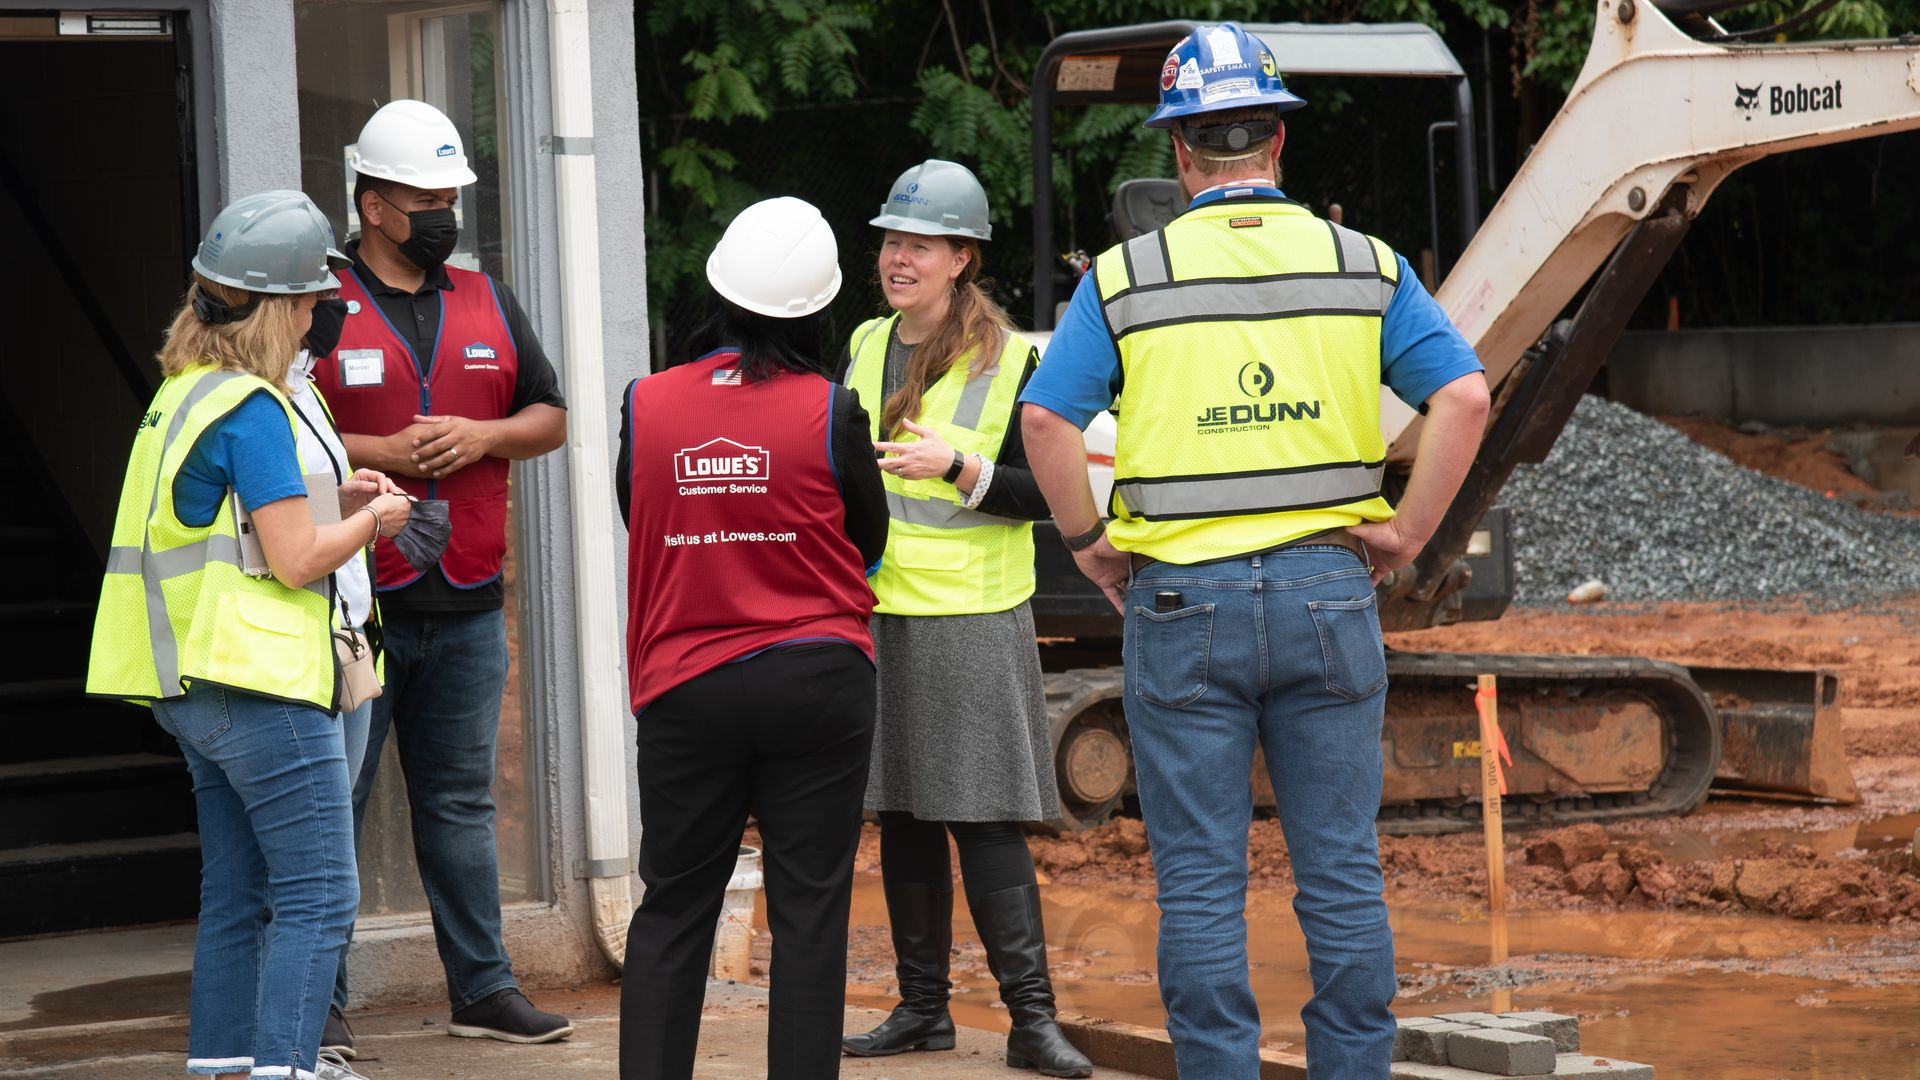 Five people standing and conversing in a circle at a construction site. They're all wearing hard hats and reflective vests.